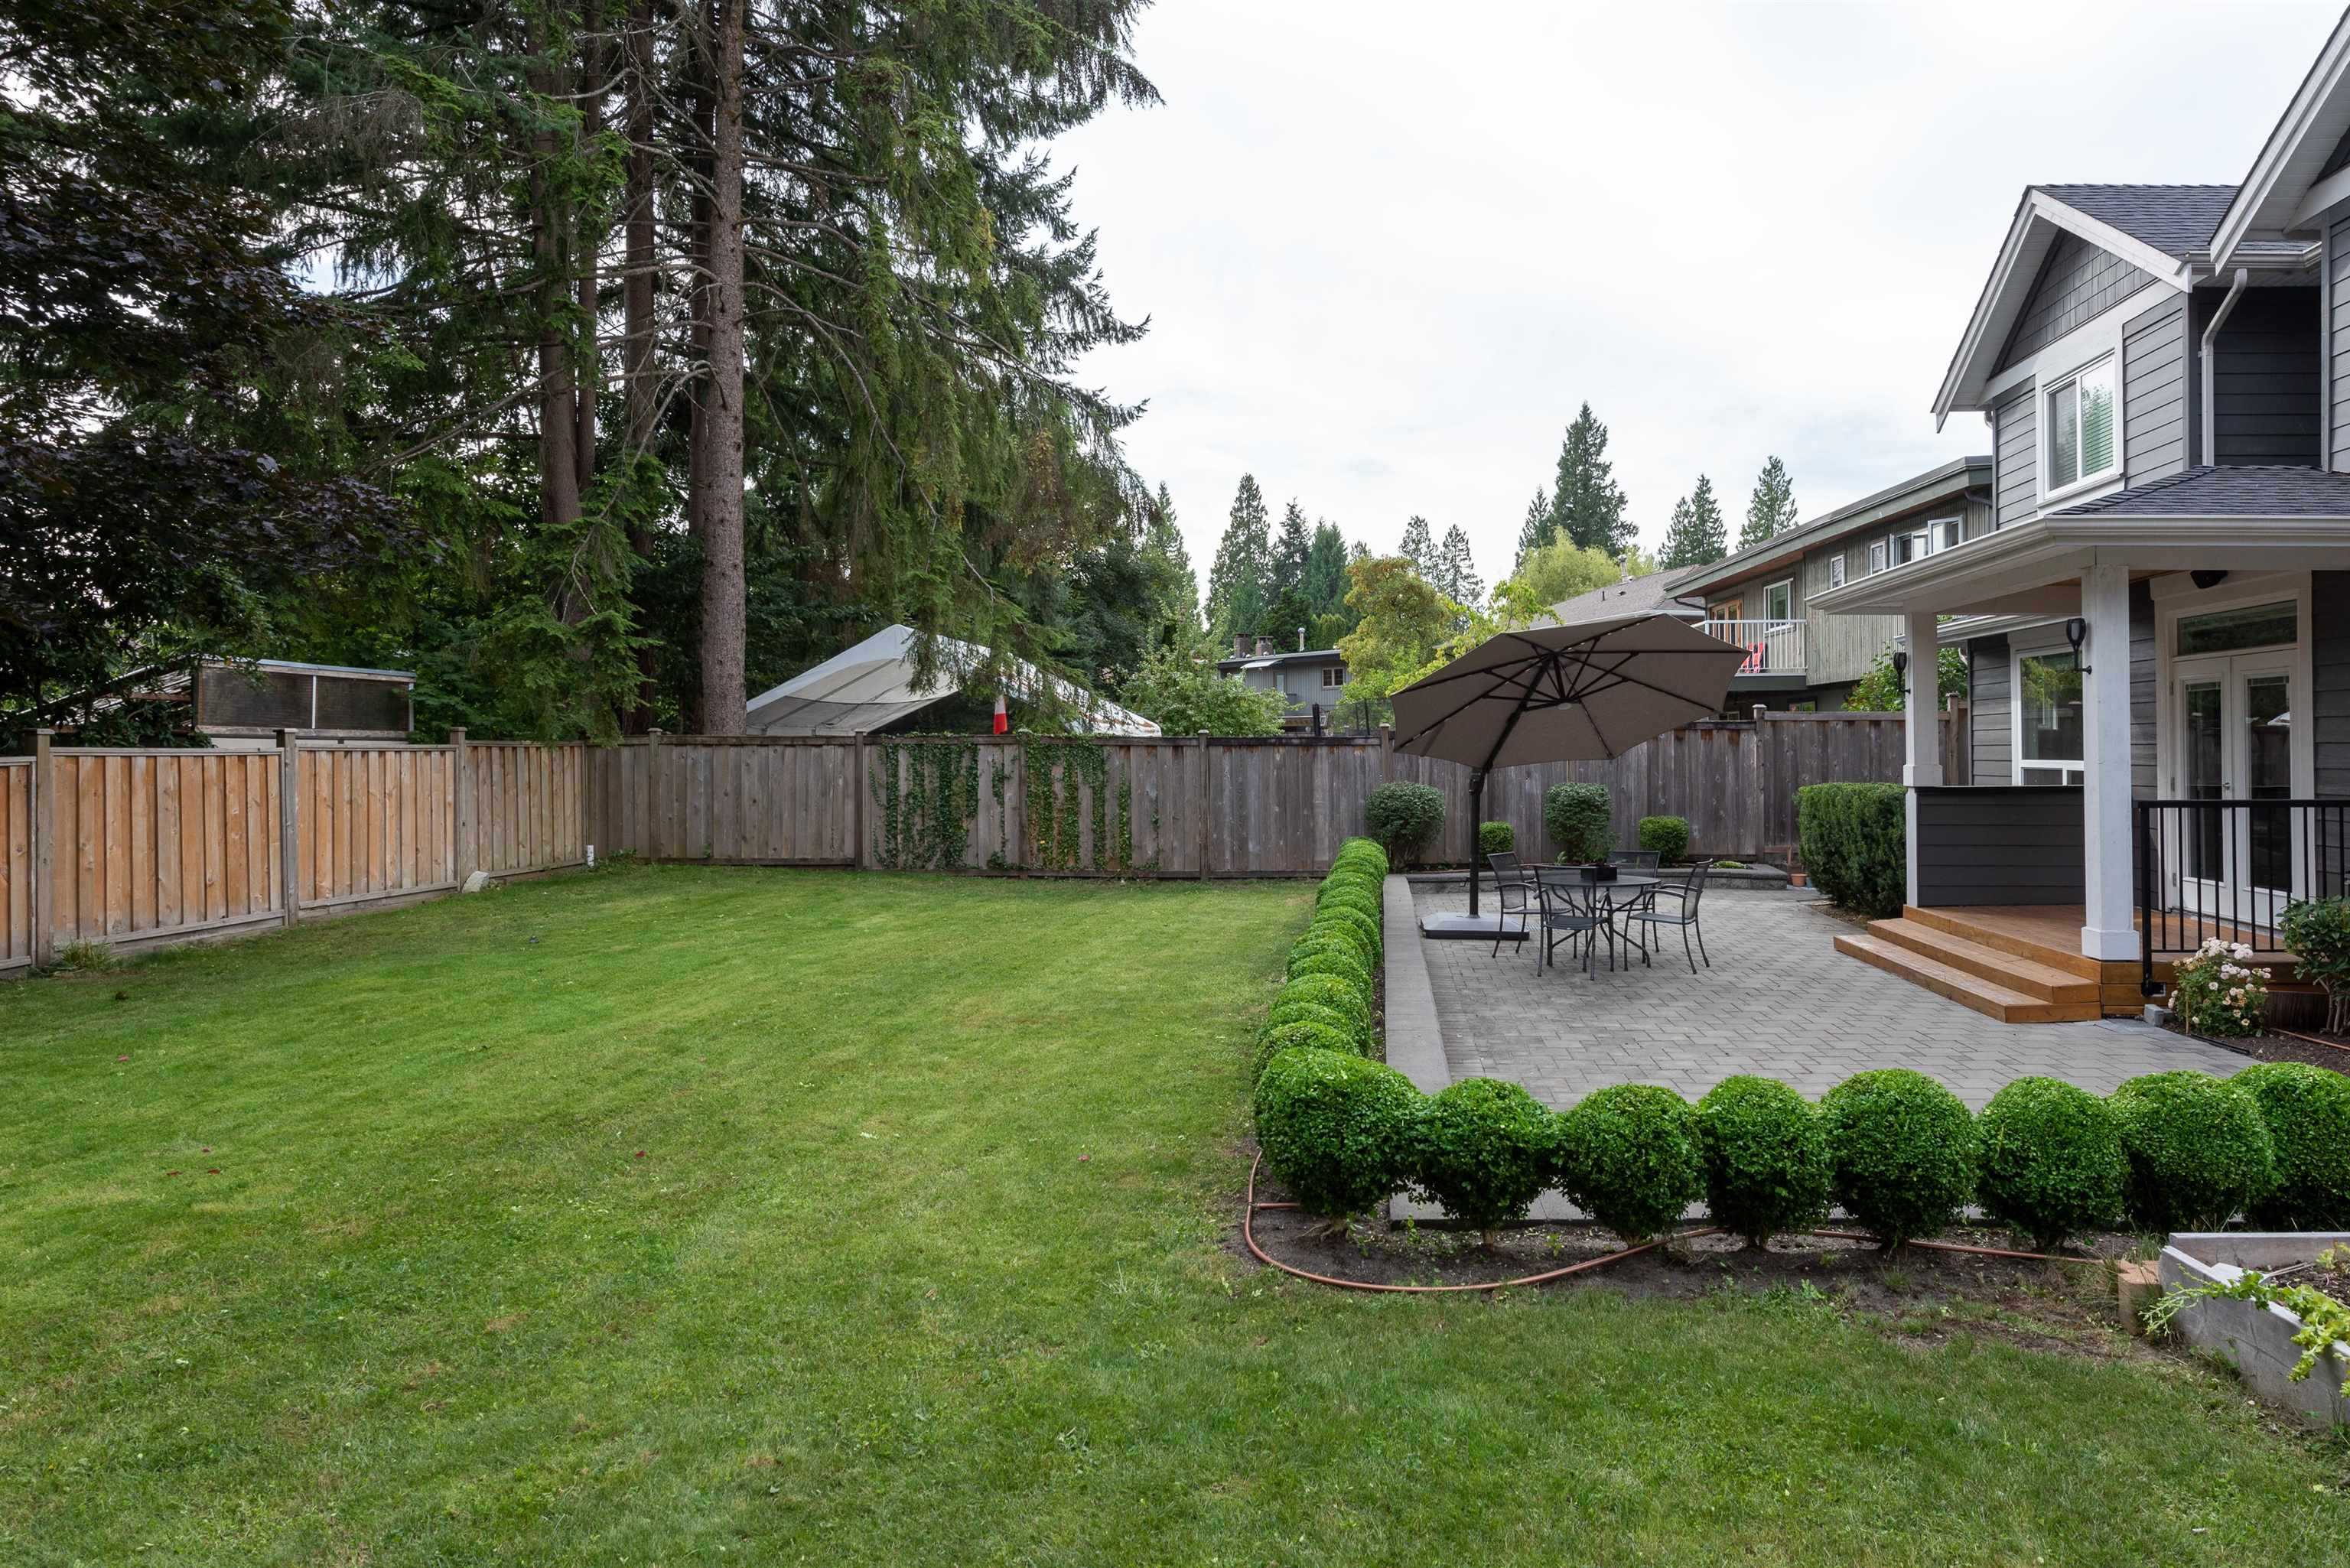 1671 PIERARD ROAD - Lynn Valley House/Single Family for sale, 6 Bedrooms (R2617072) - #5